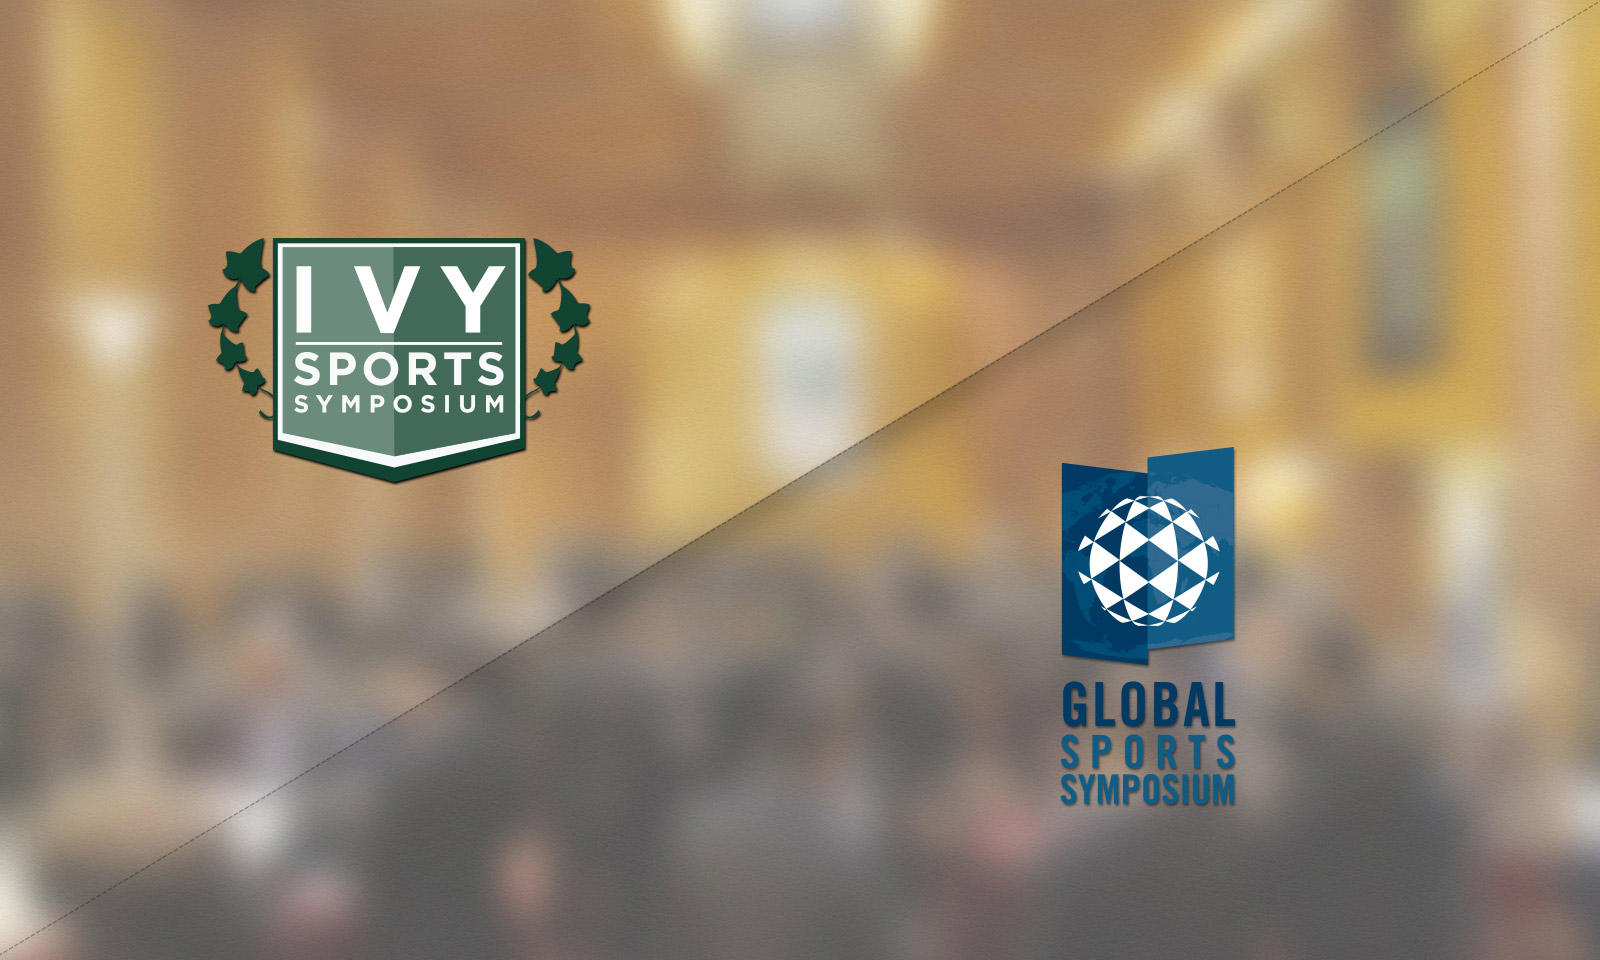 The Global Sports Symposium: 15th May